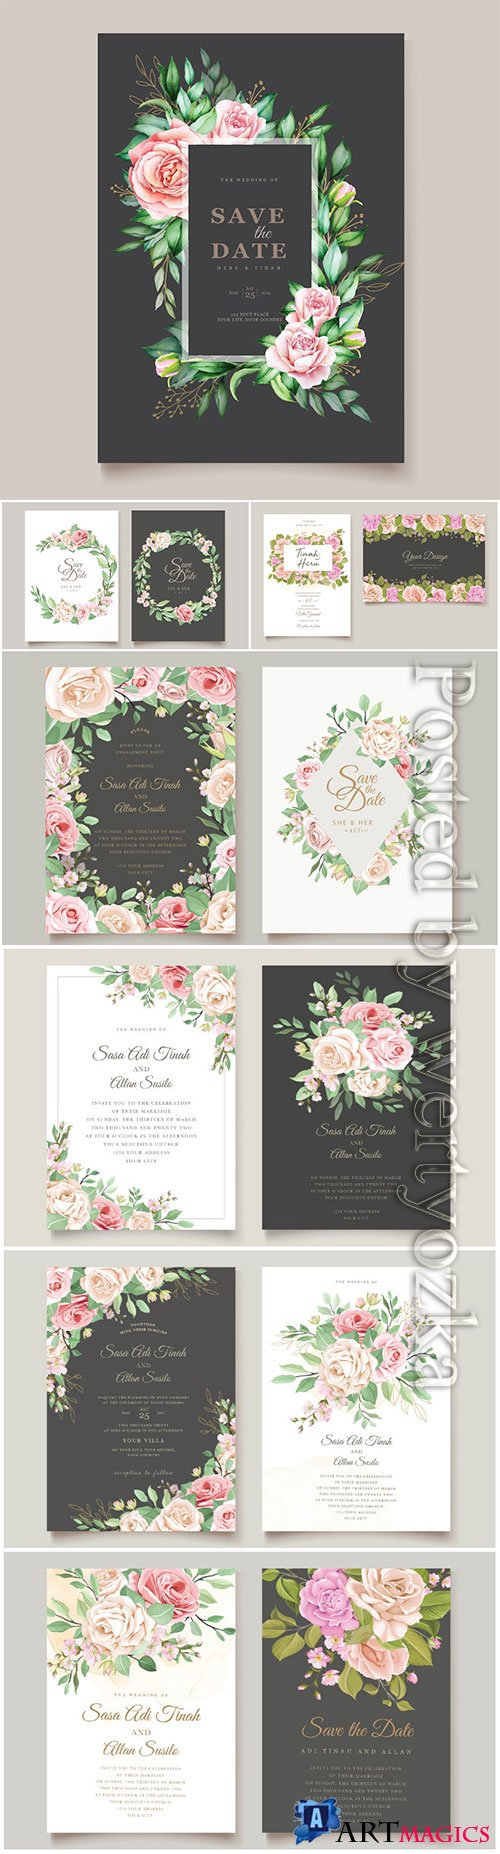 Wedding invitation vector card with floral and leaves